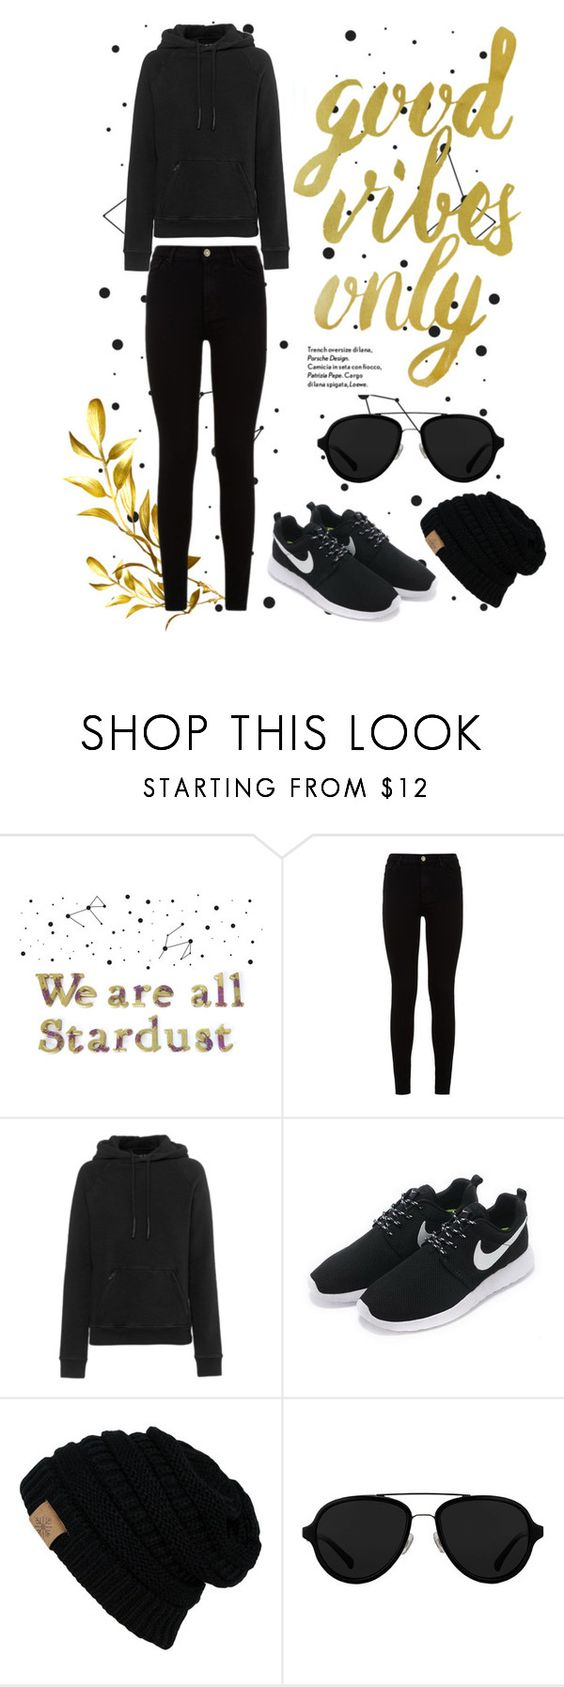 """""""Simply ootd"""" by mayangardilla17 ❤ liked on Polyvore featuring 7 For All Mankind, adidas Originals, NIKE and 3.1 Phillip Lim"""